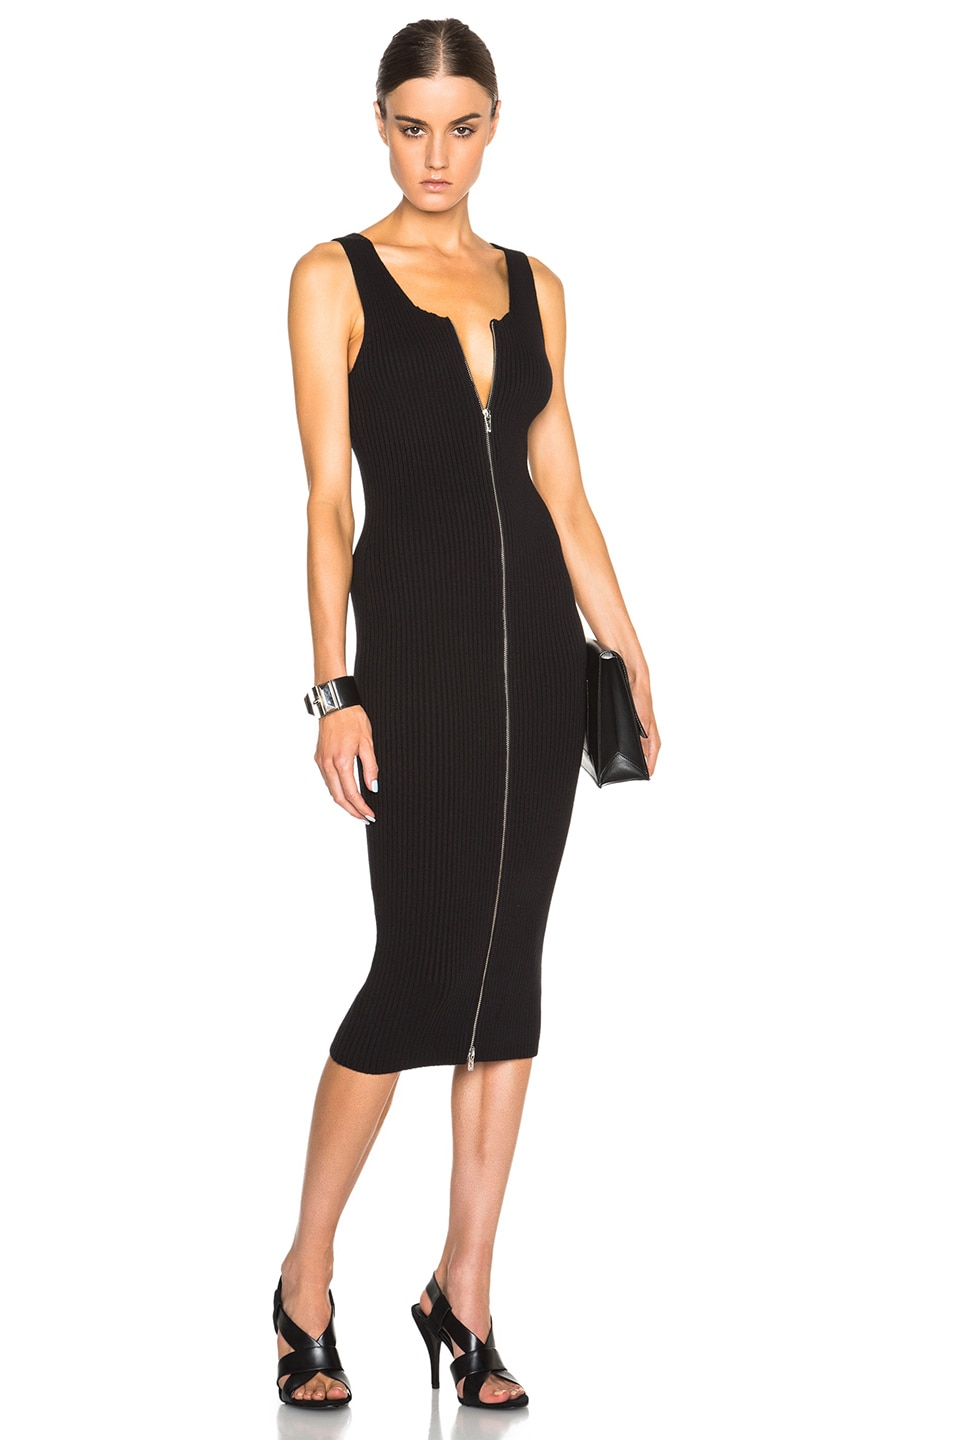 e91477241cdc Image 1 of T by Alexander Wang Rib Knit Zip Tank Dress in Black